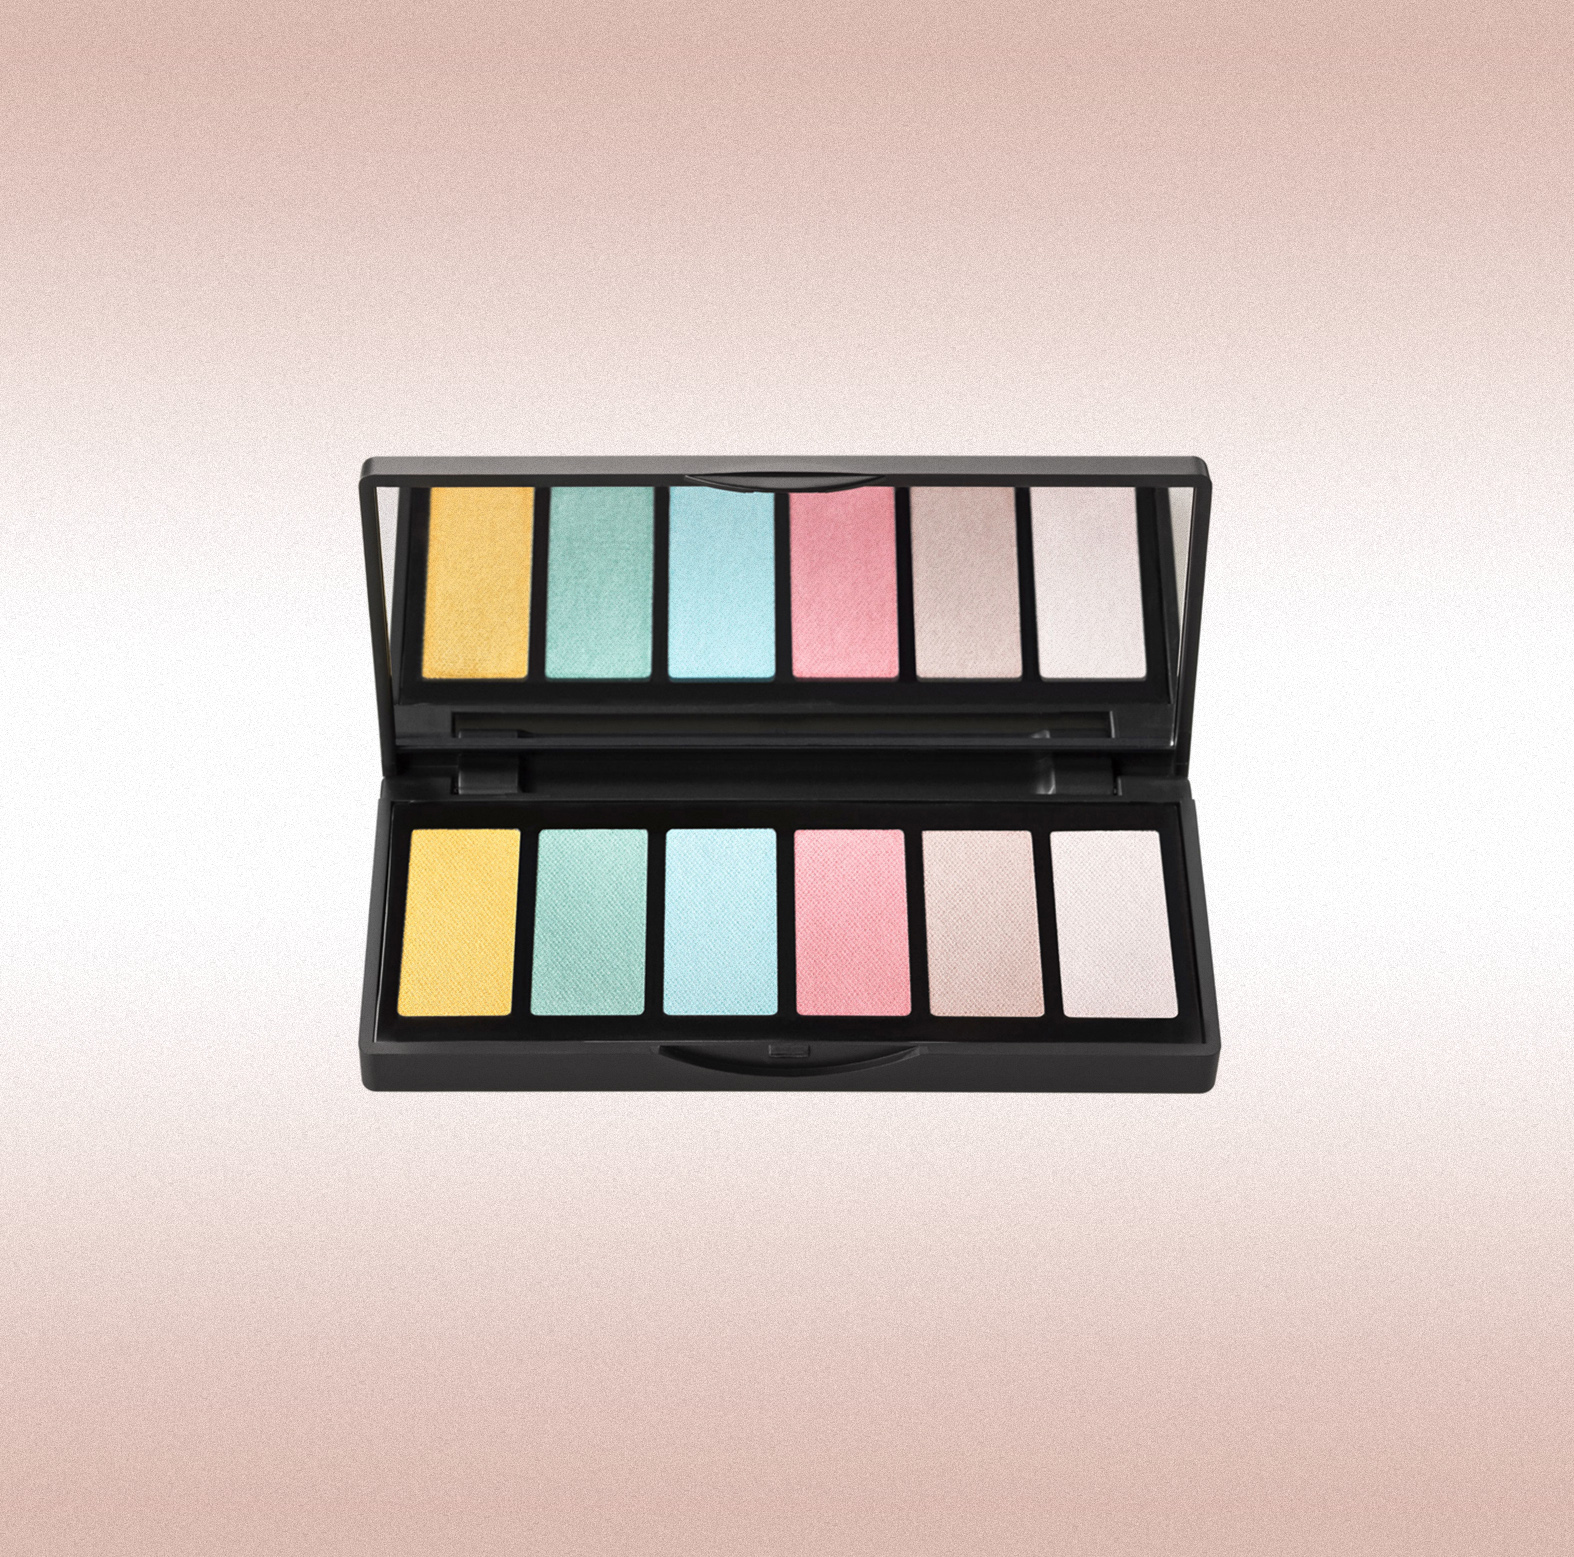 3INA the eyeshadow palette